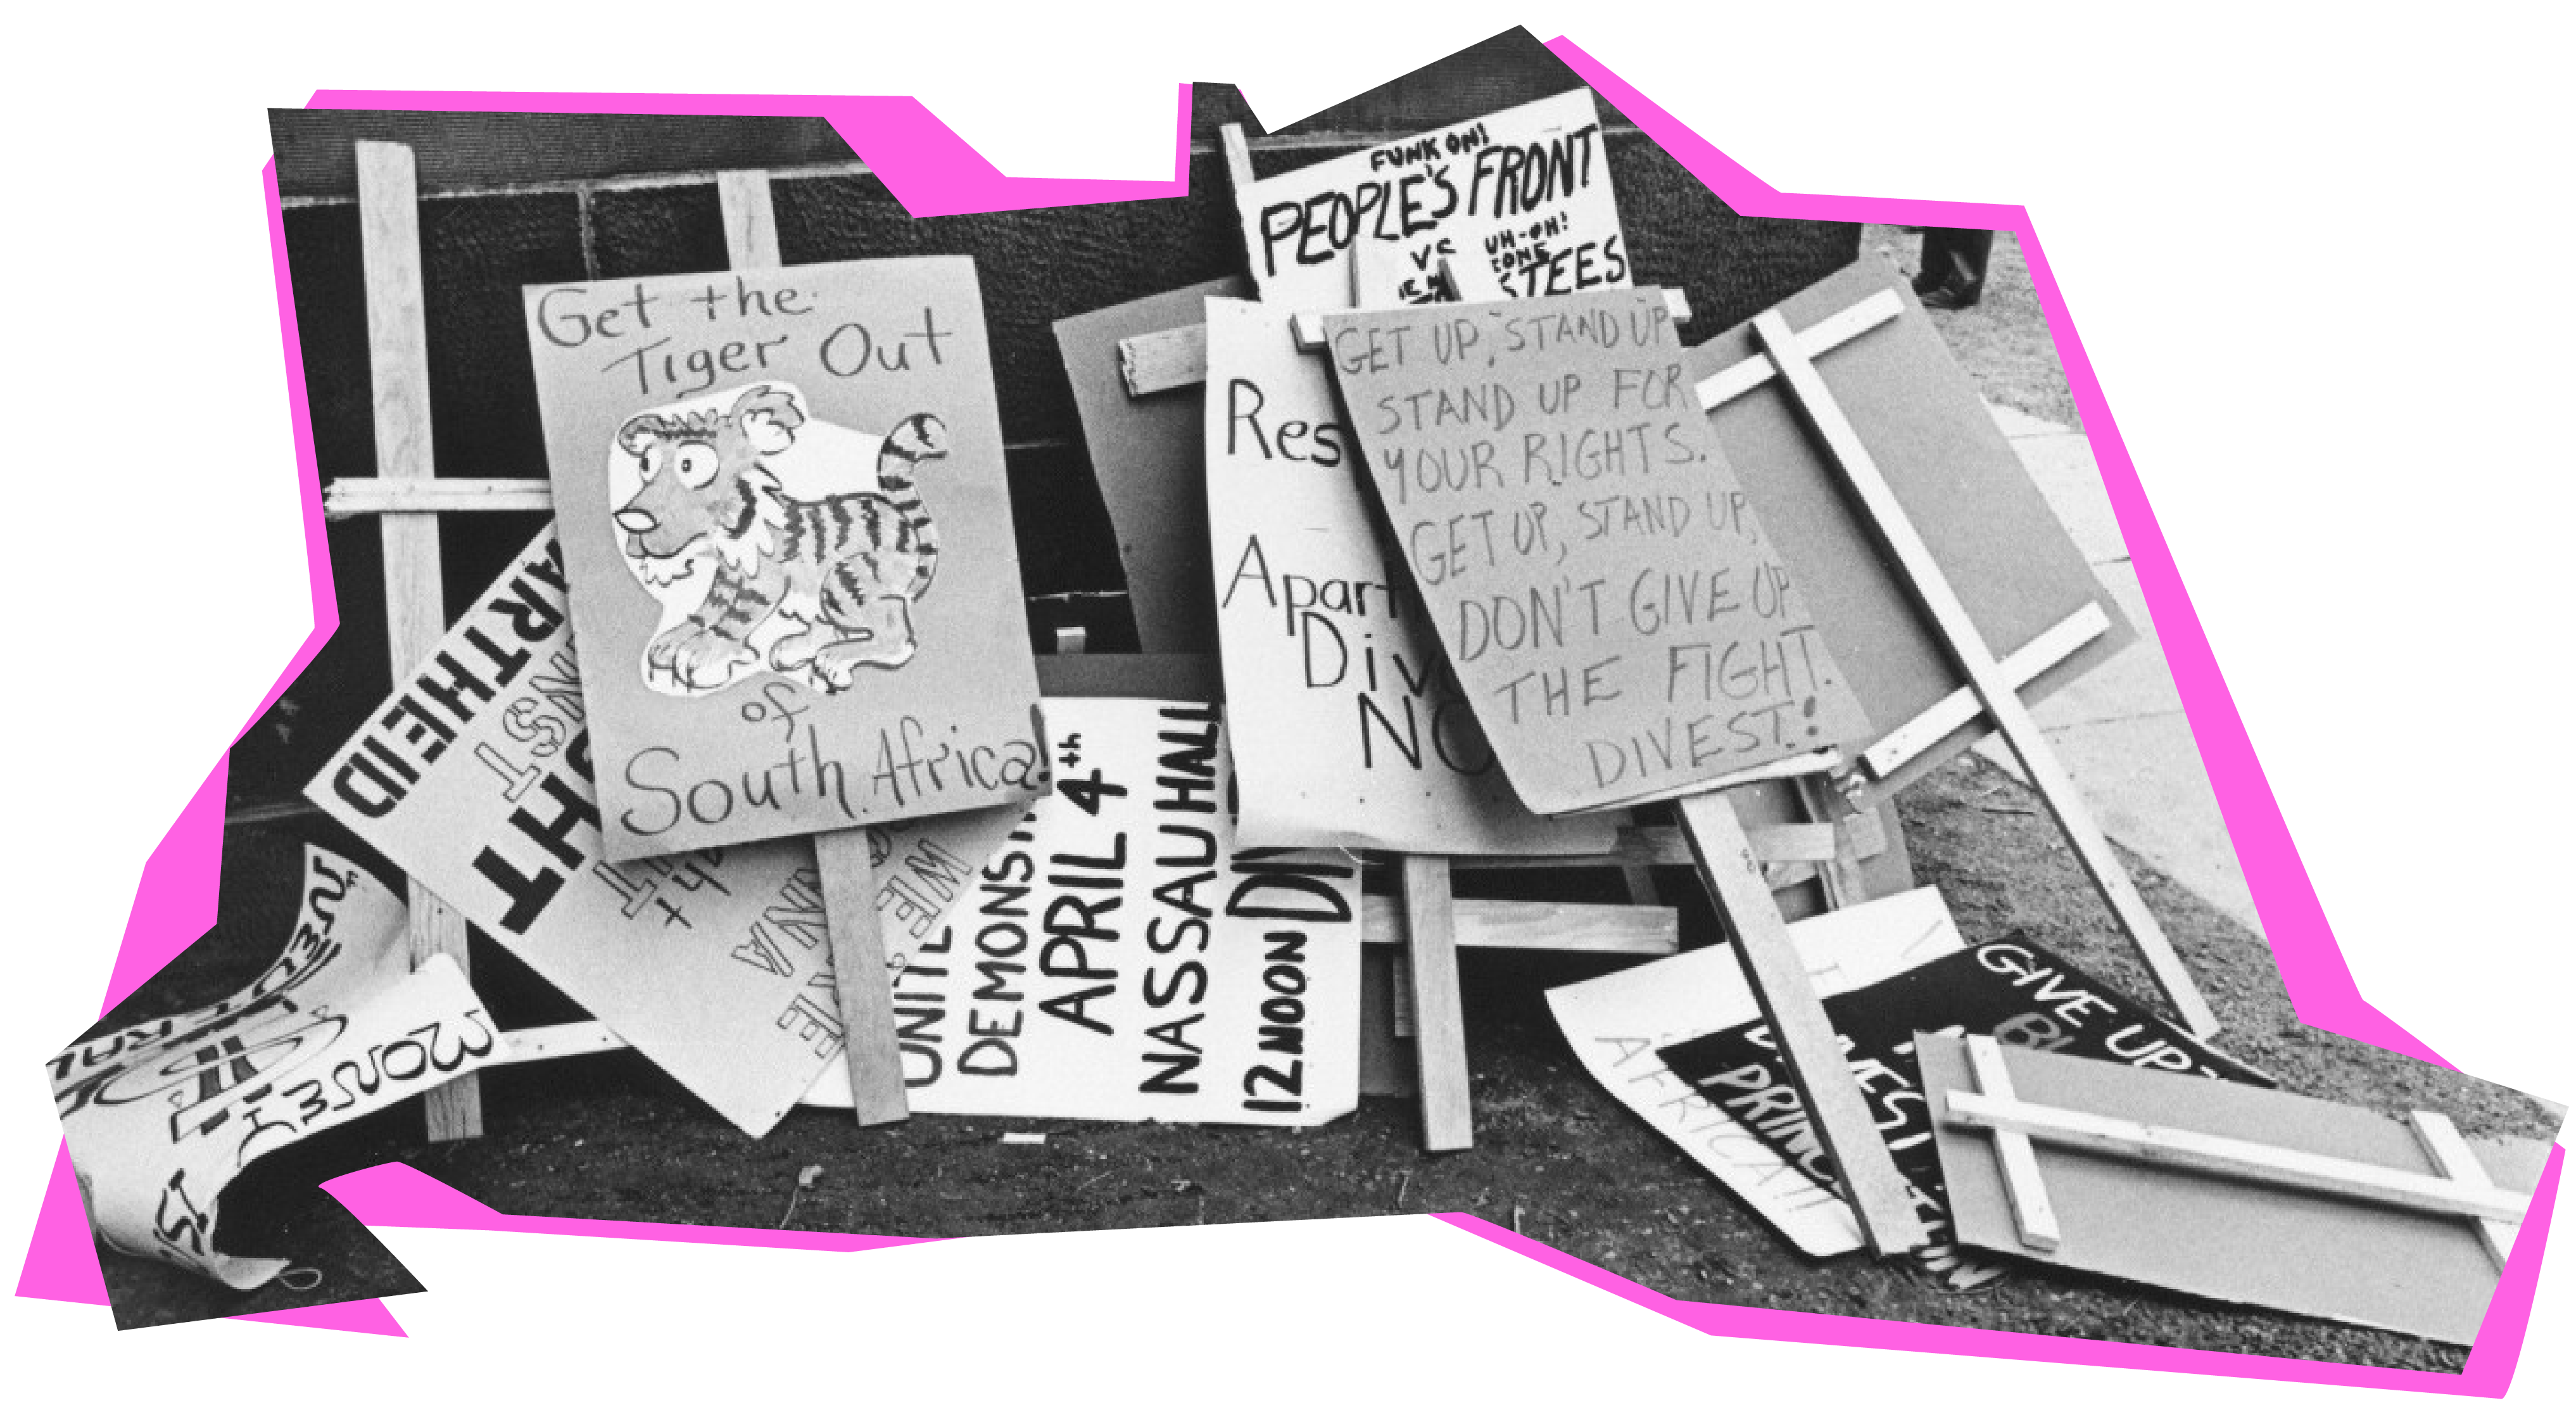 """Pile of 1978 protest signs against investments in South Africa, with phrases like """"Get the tiger out of South Africa."""""""